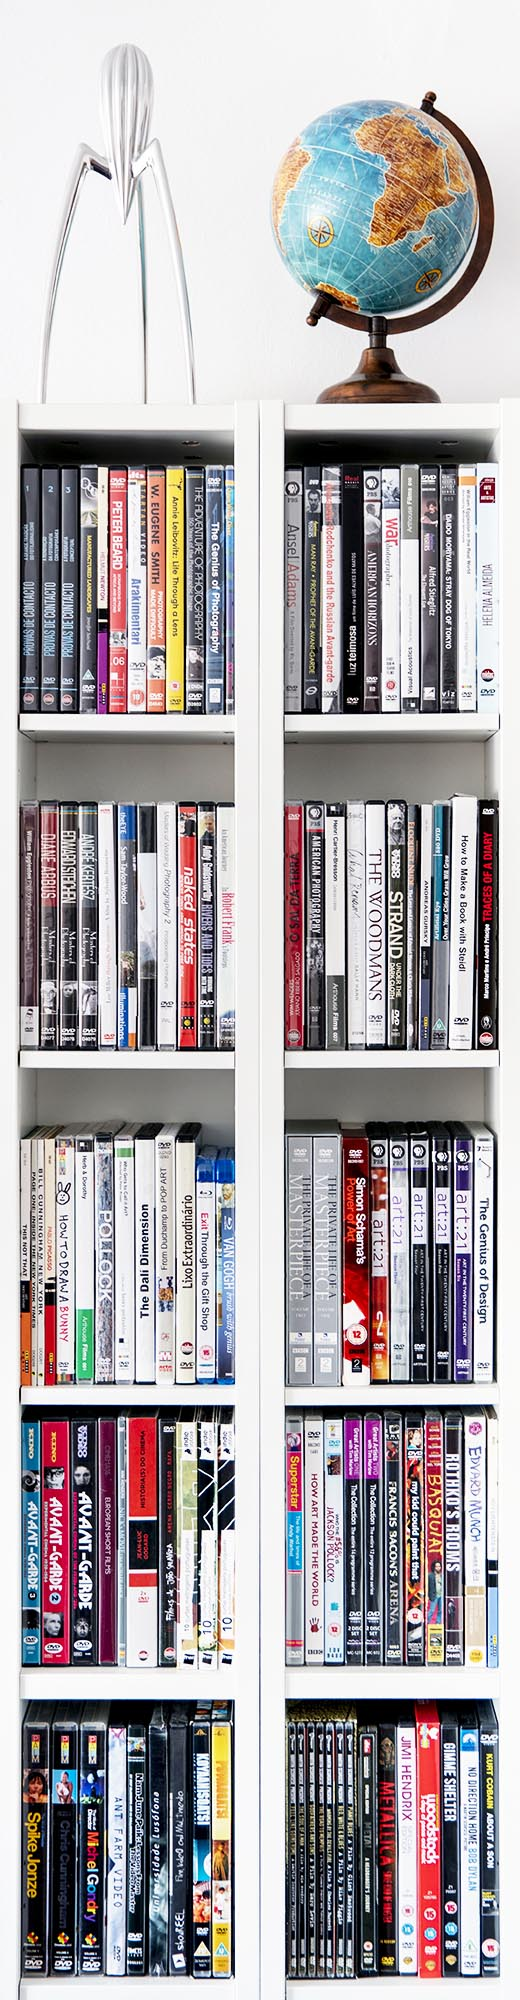 AndreVicenteGoncalves - My DVD Collection of Art & Photography_Blog_Final_2000px.jpg